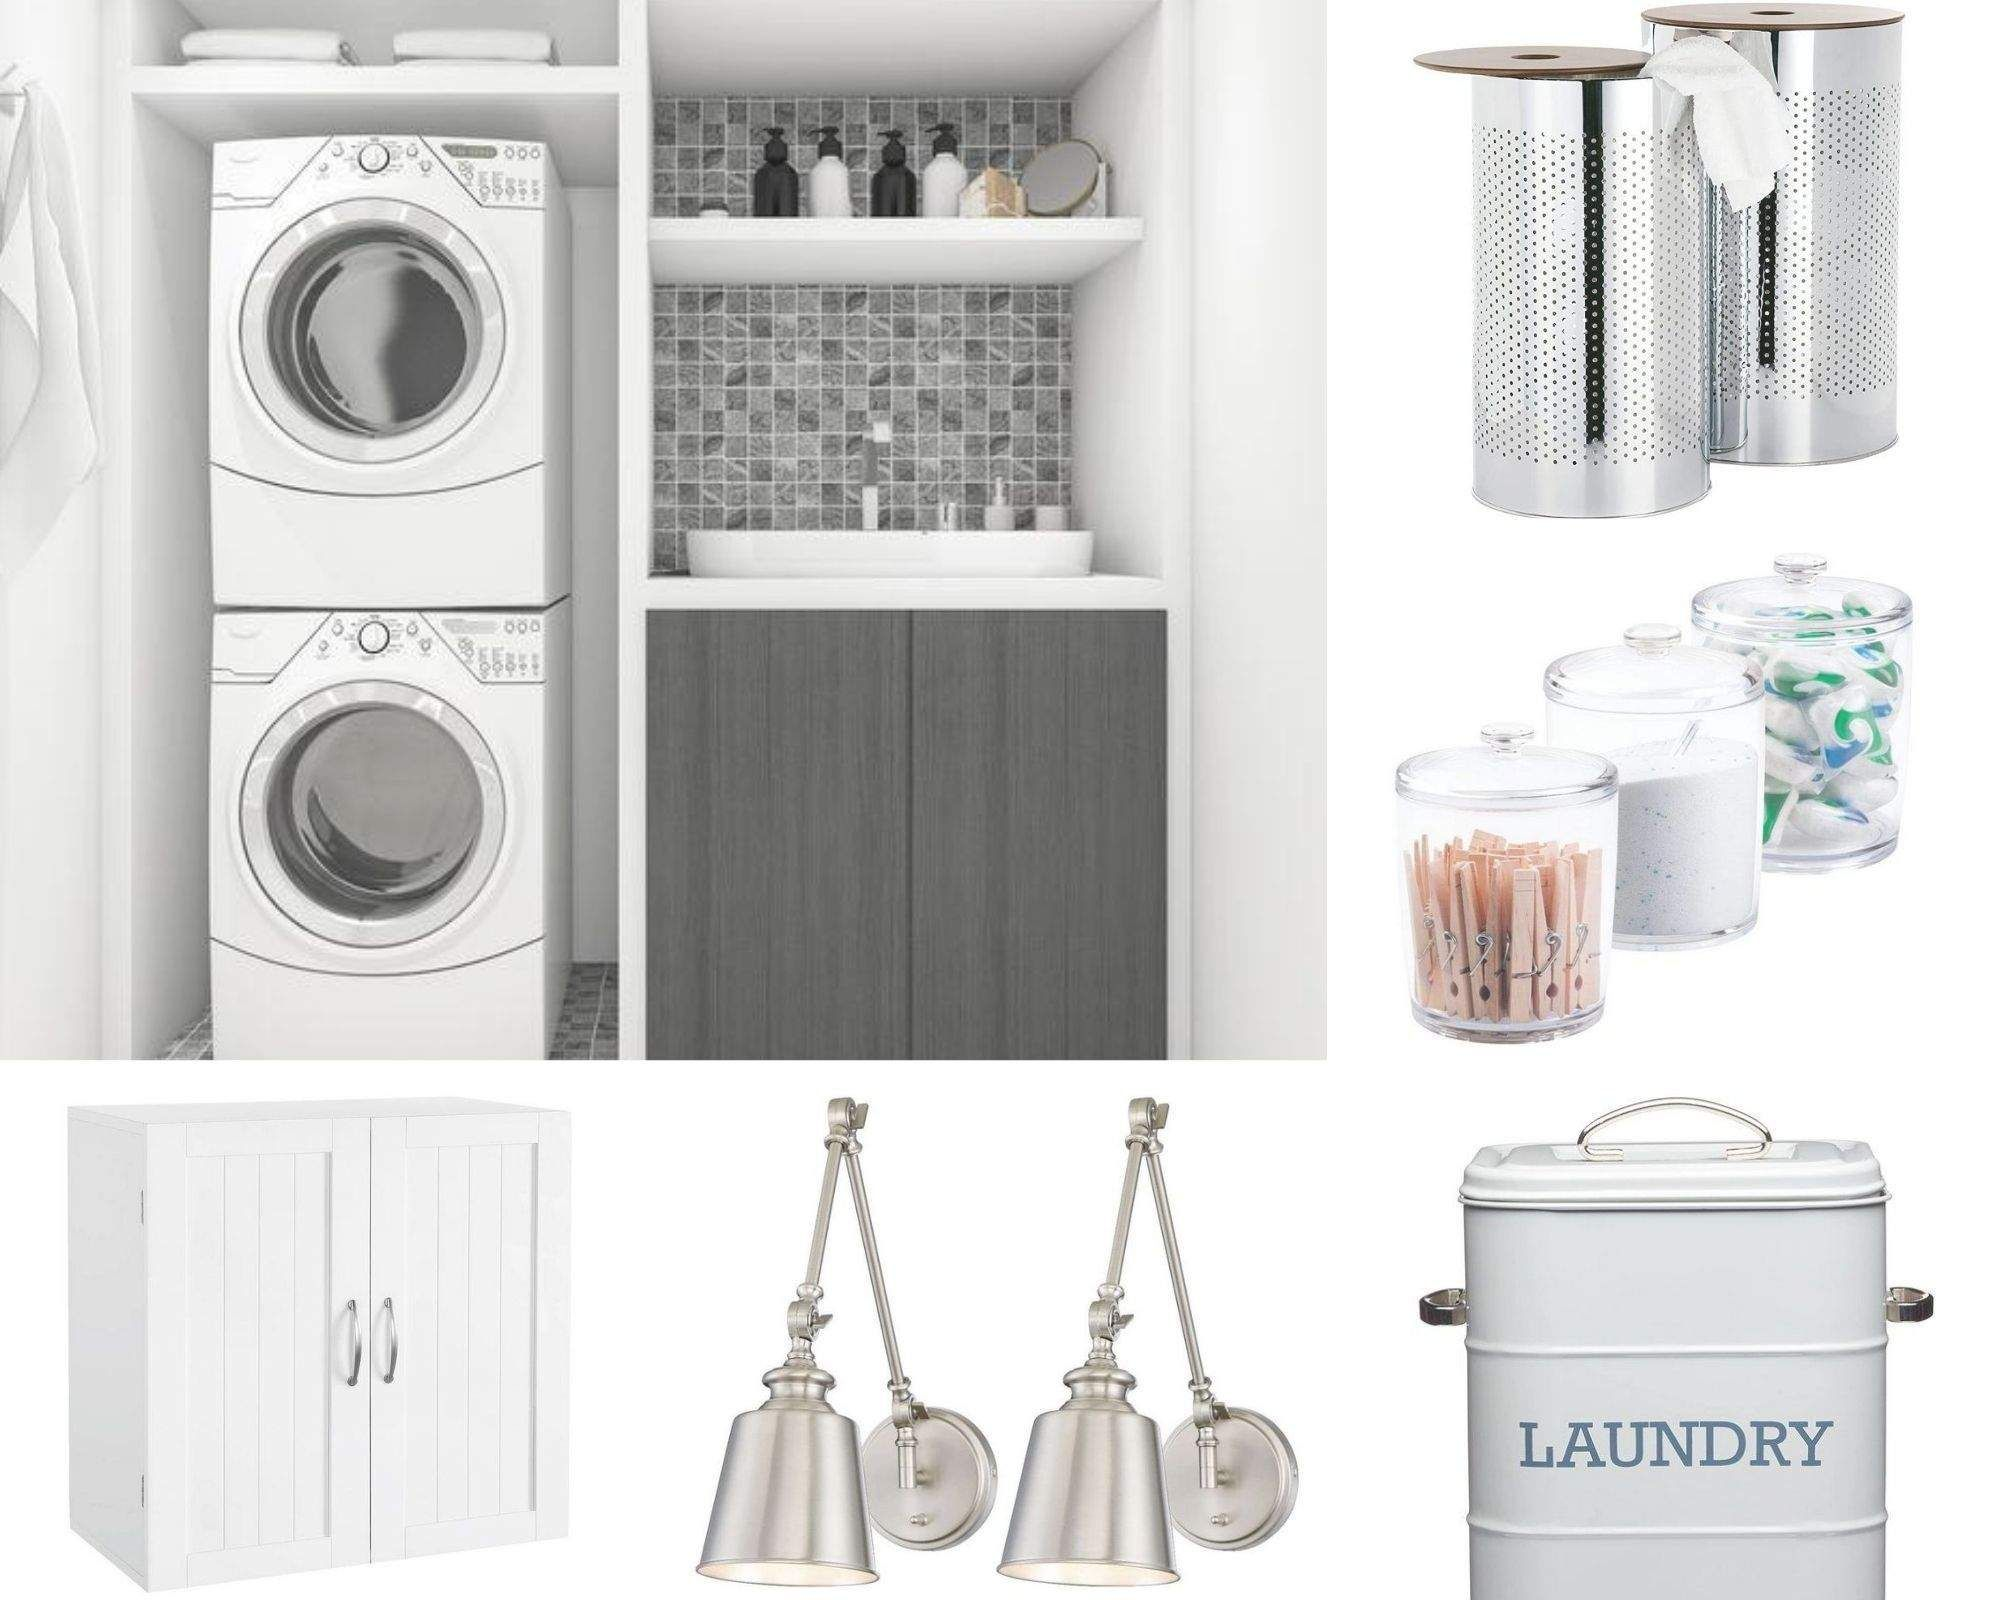 25 Best Hampers And Other Laundry Room Items In 2020 Room Accessories Laundry Room Laundry